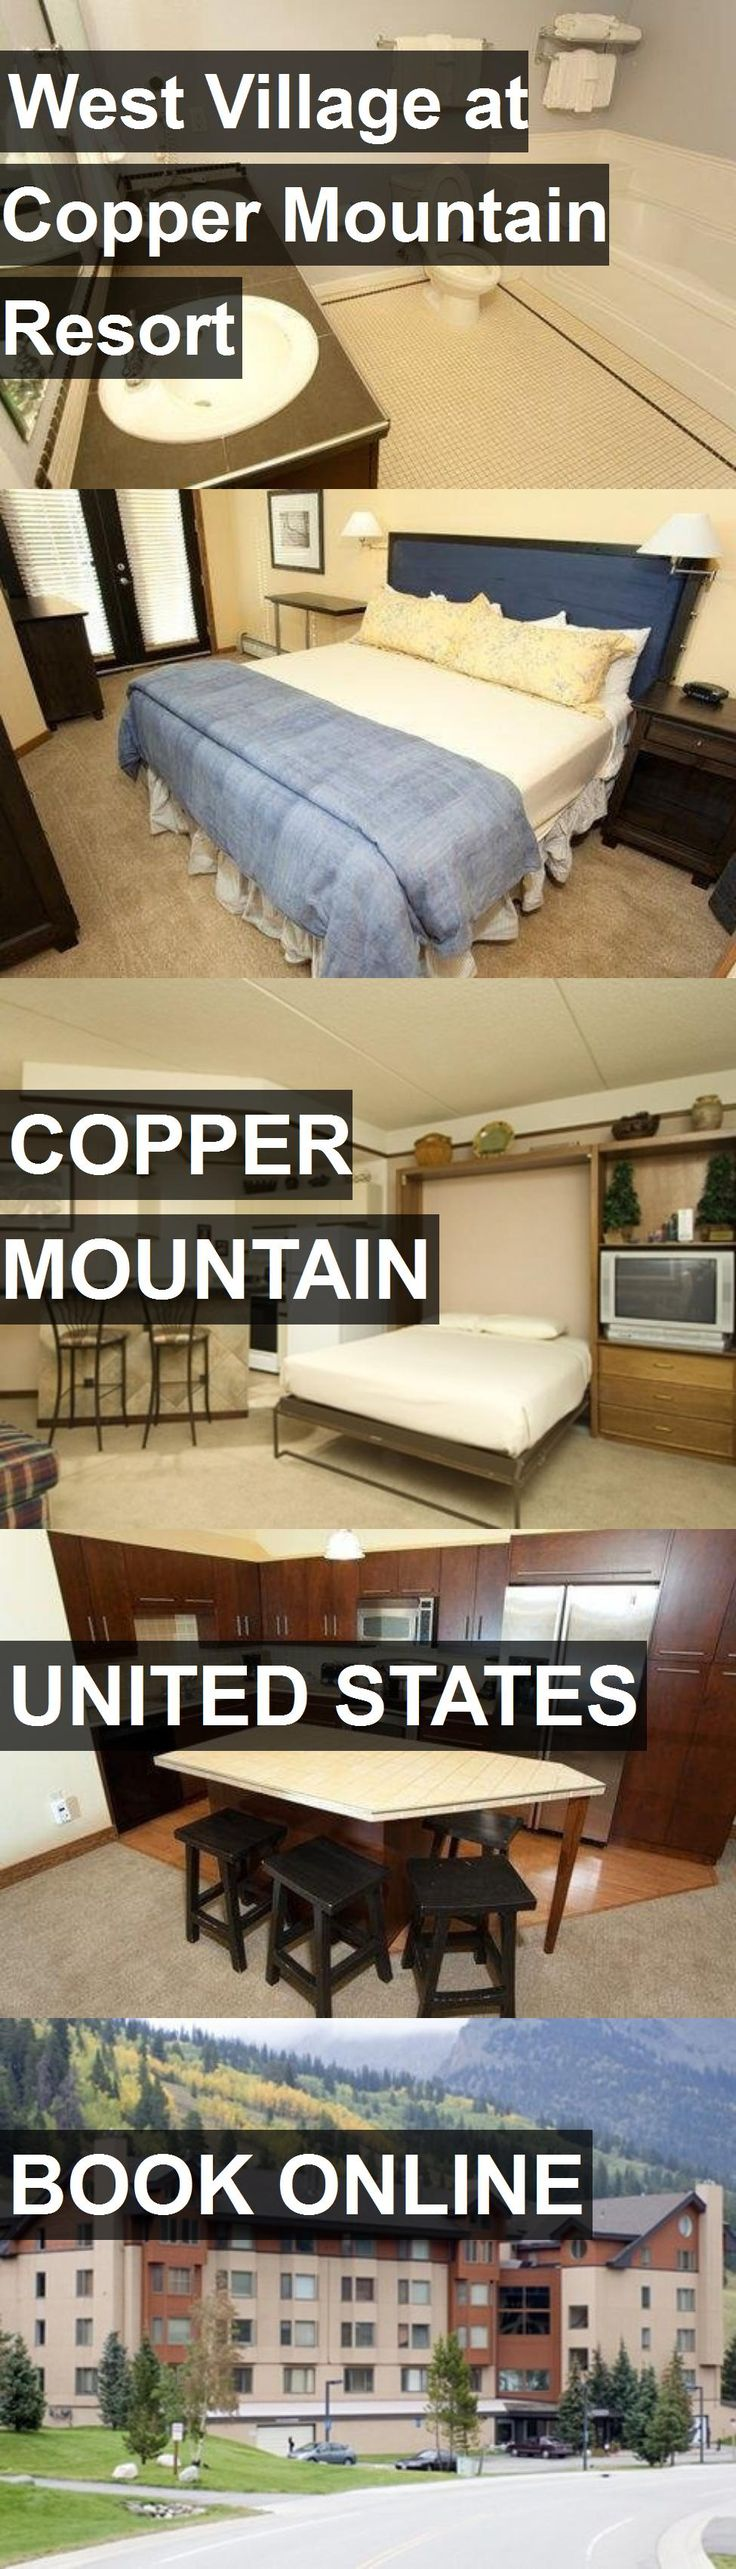 Hotel West Village at Copper Mountain Resort in Copper Mountain, United States. For more information, photos, reviews and best prices please follow the link. #UnitedStates #CopperMountain #hotel #travel #vacation